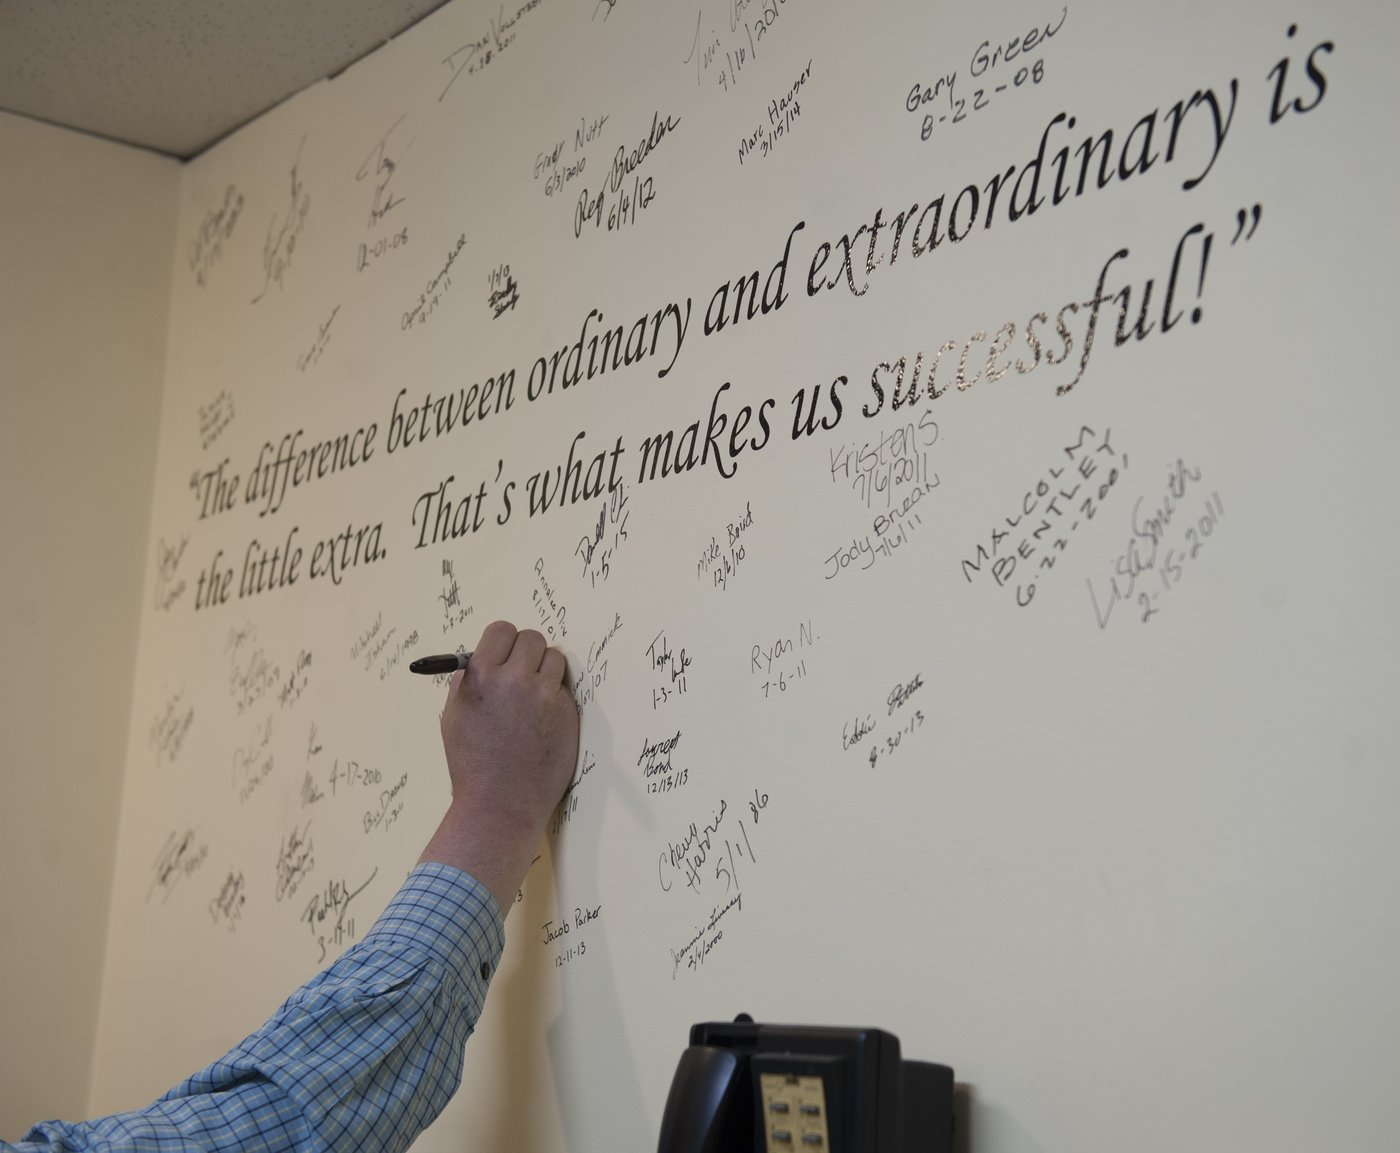 All employees have to sign a commitment to customer service on the wall in the meeting room.